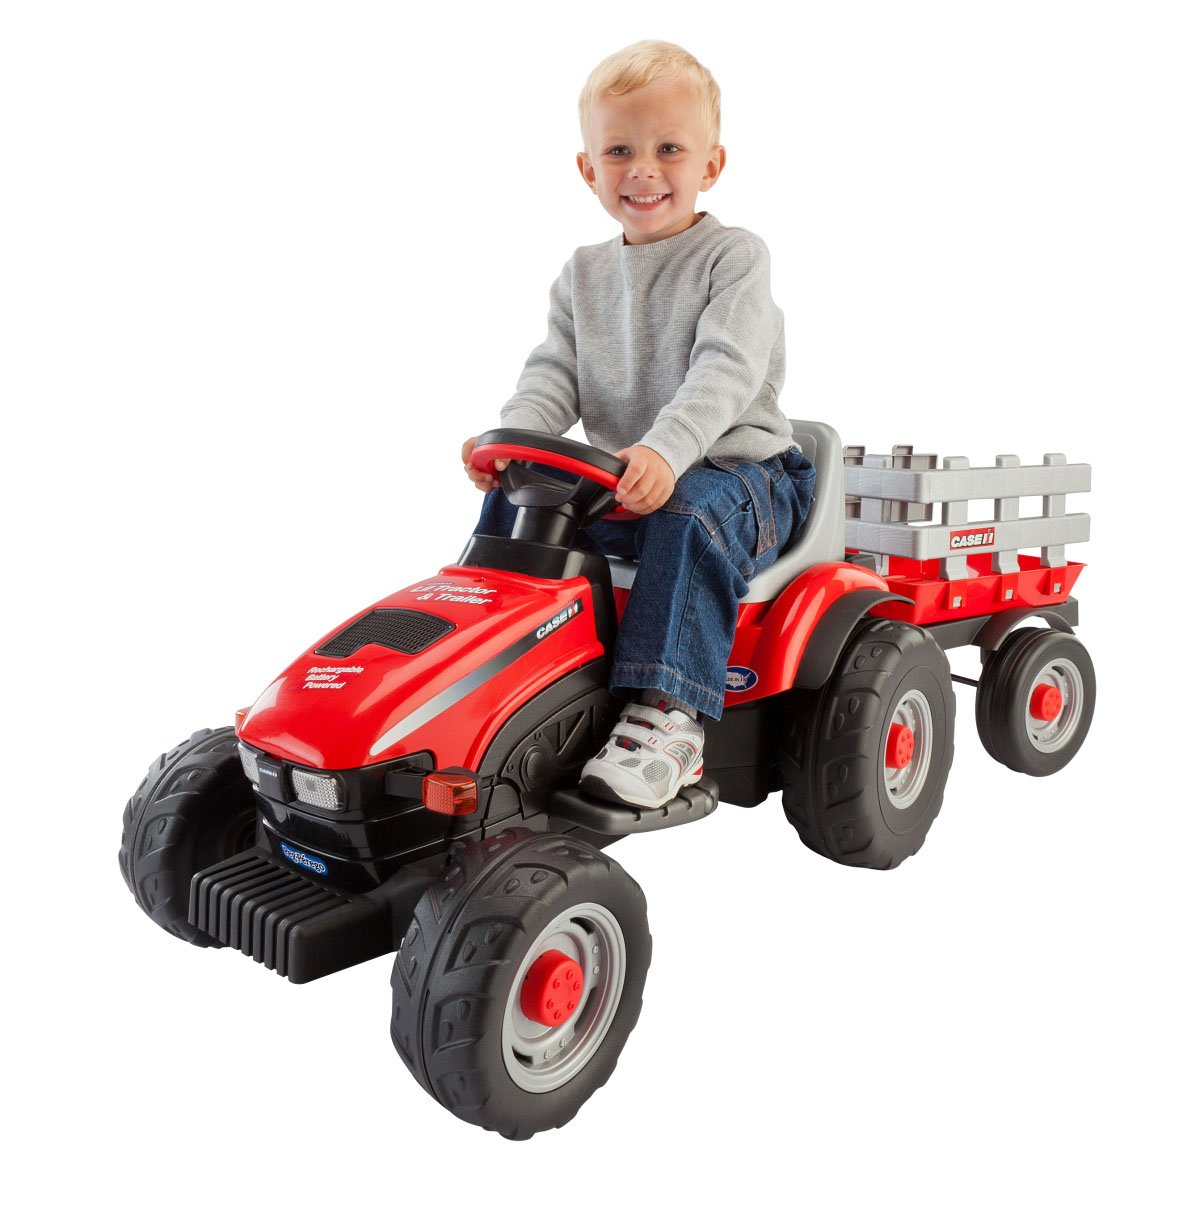 Peg Perego Case IH Little Tractor and Trailer IGED1112